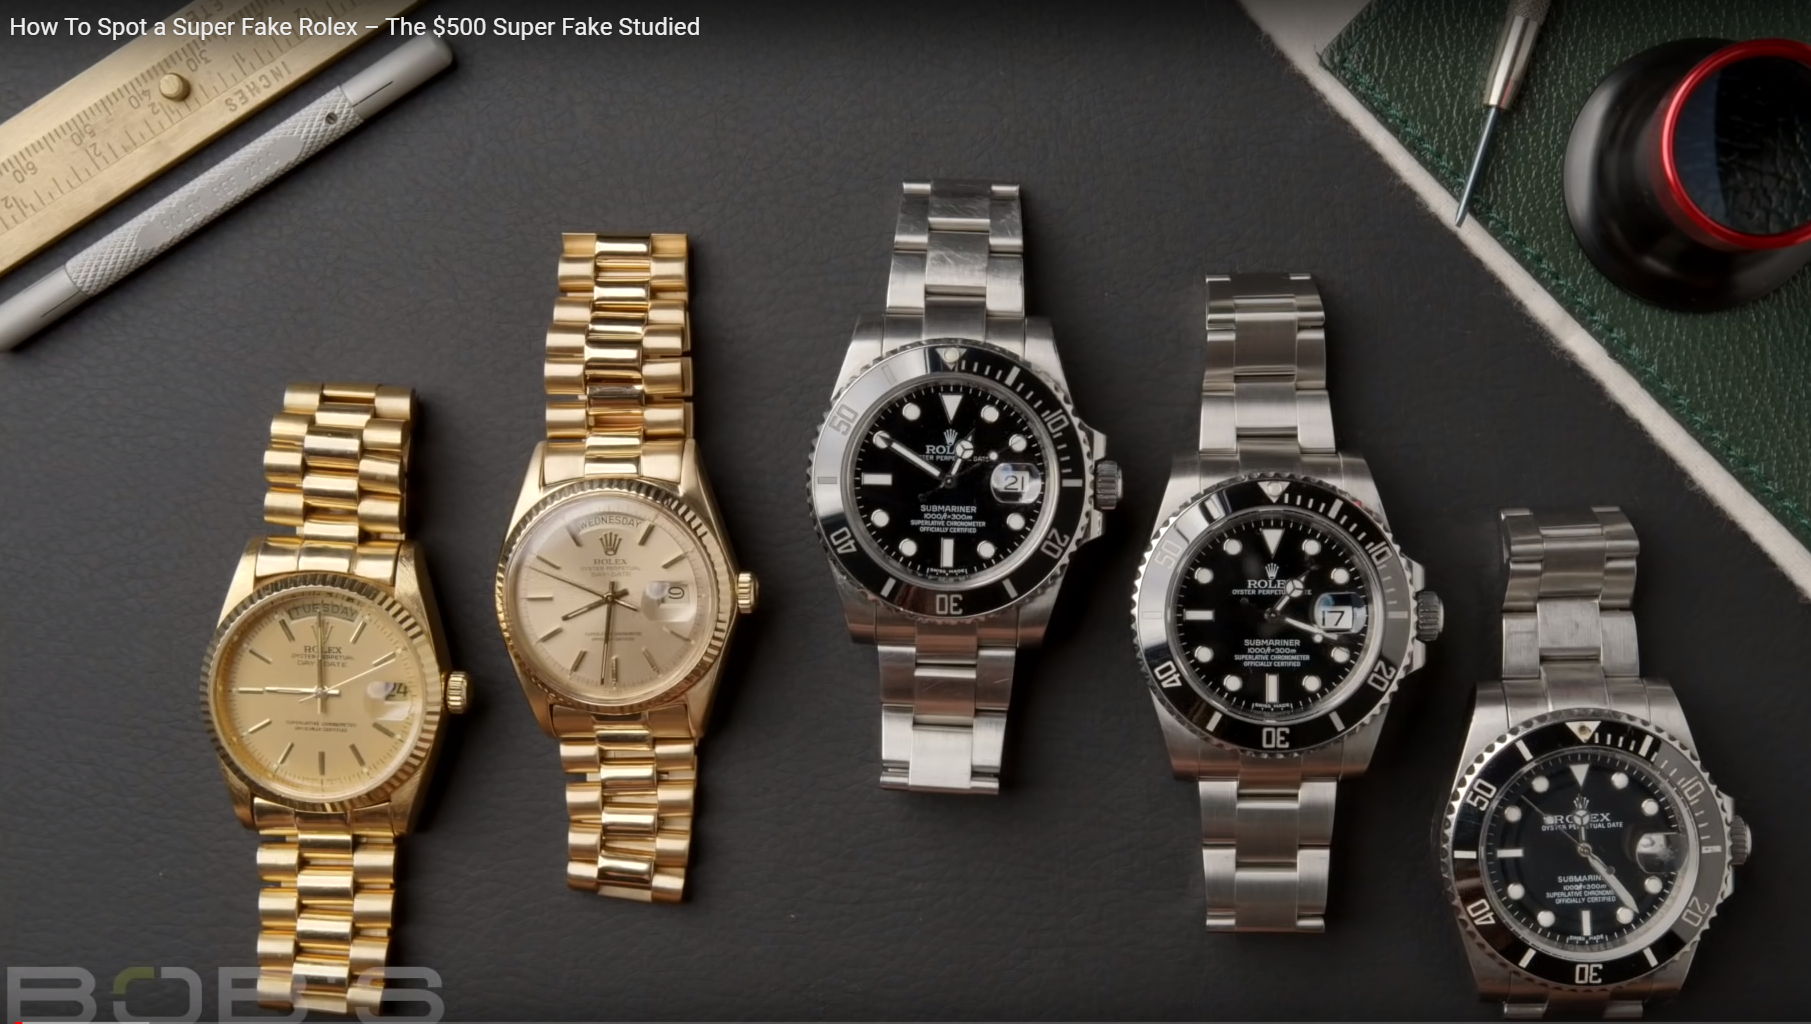 how to spot a super fake rolex